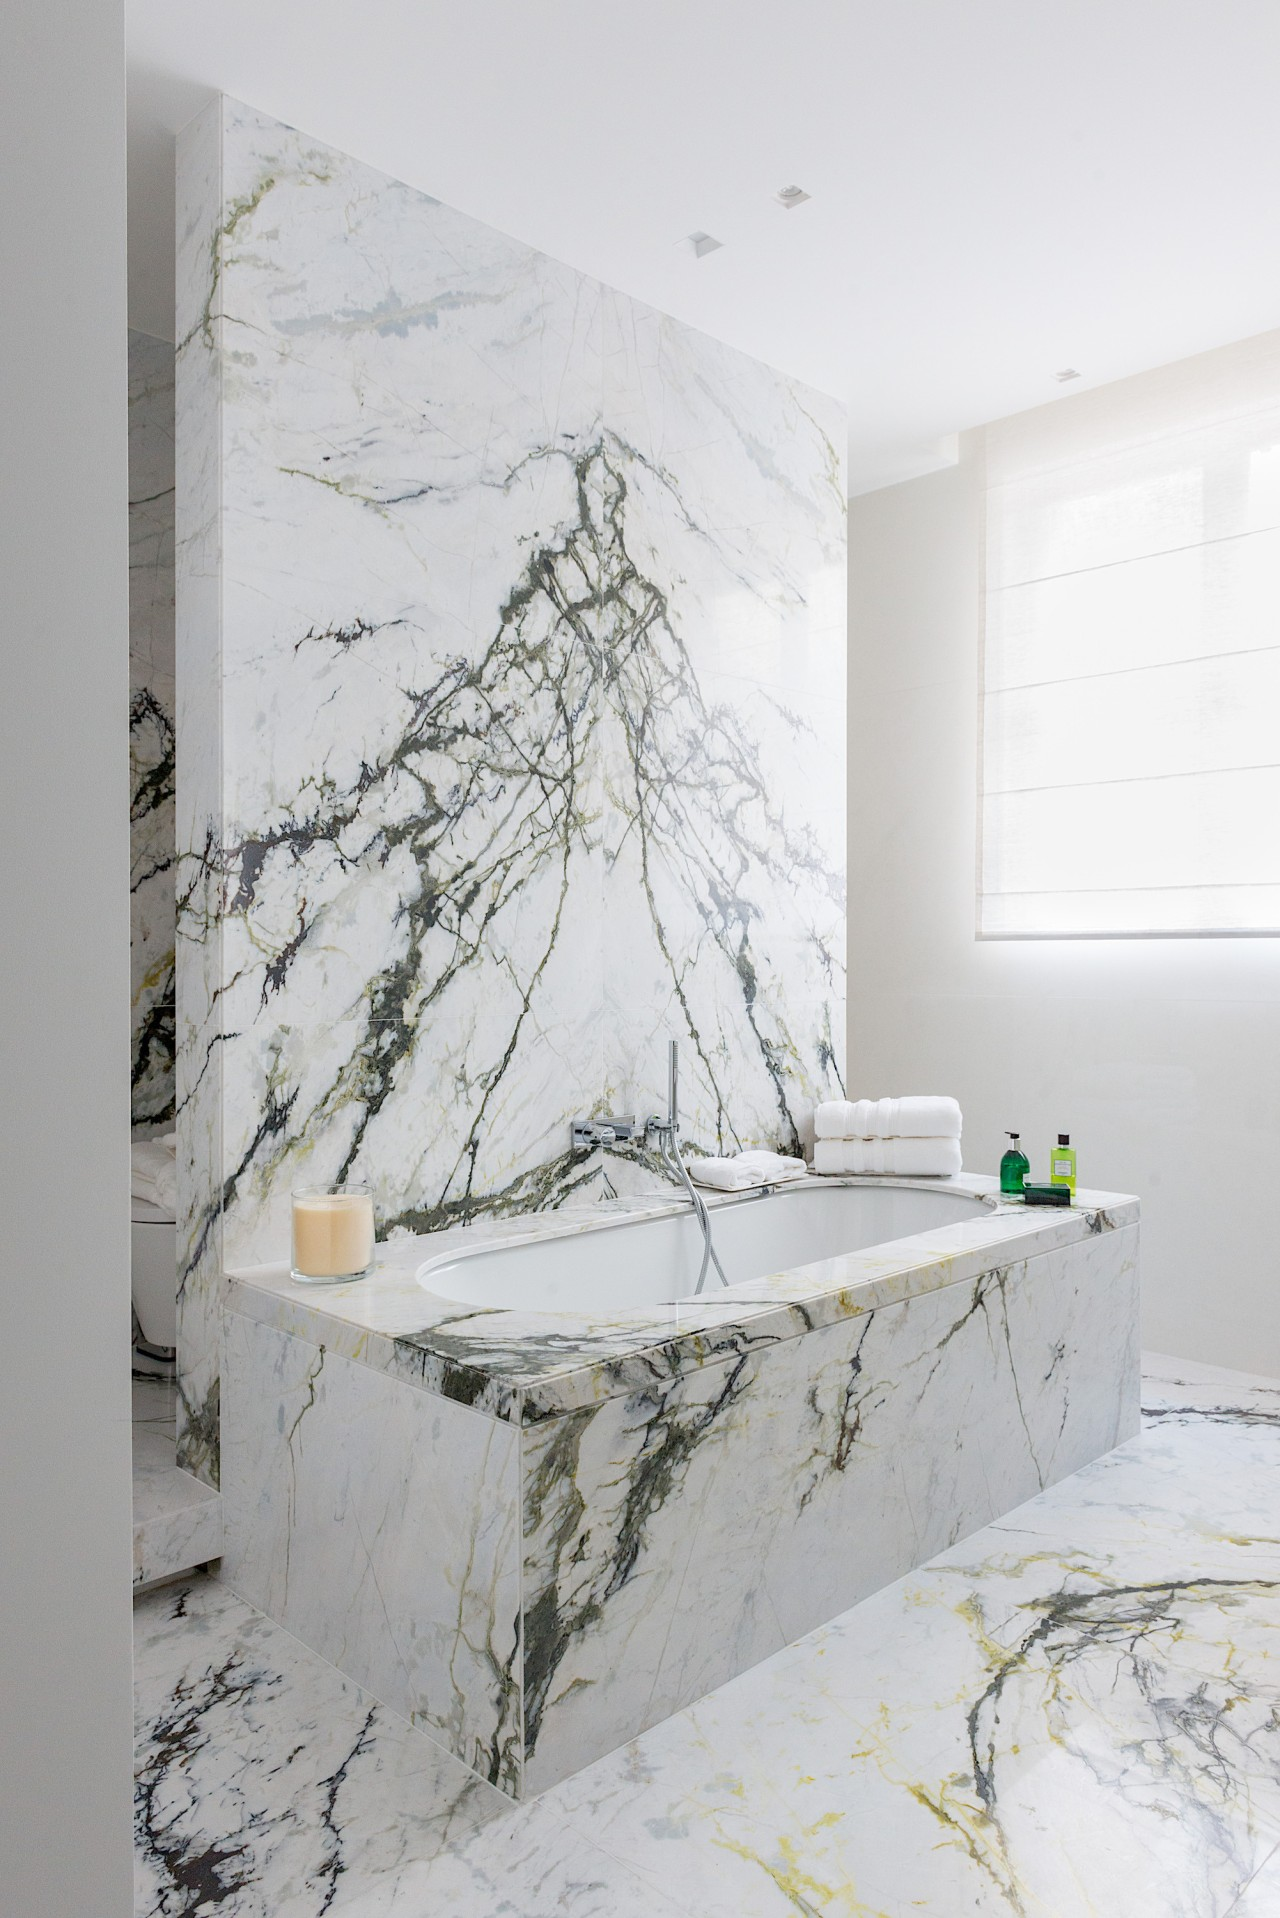 Clear lines in the distinctive marble create a white, gray